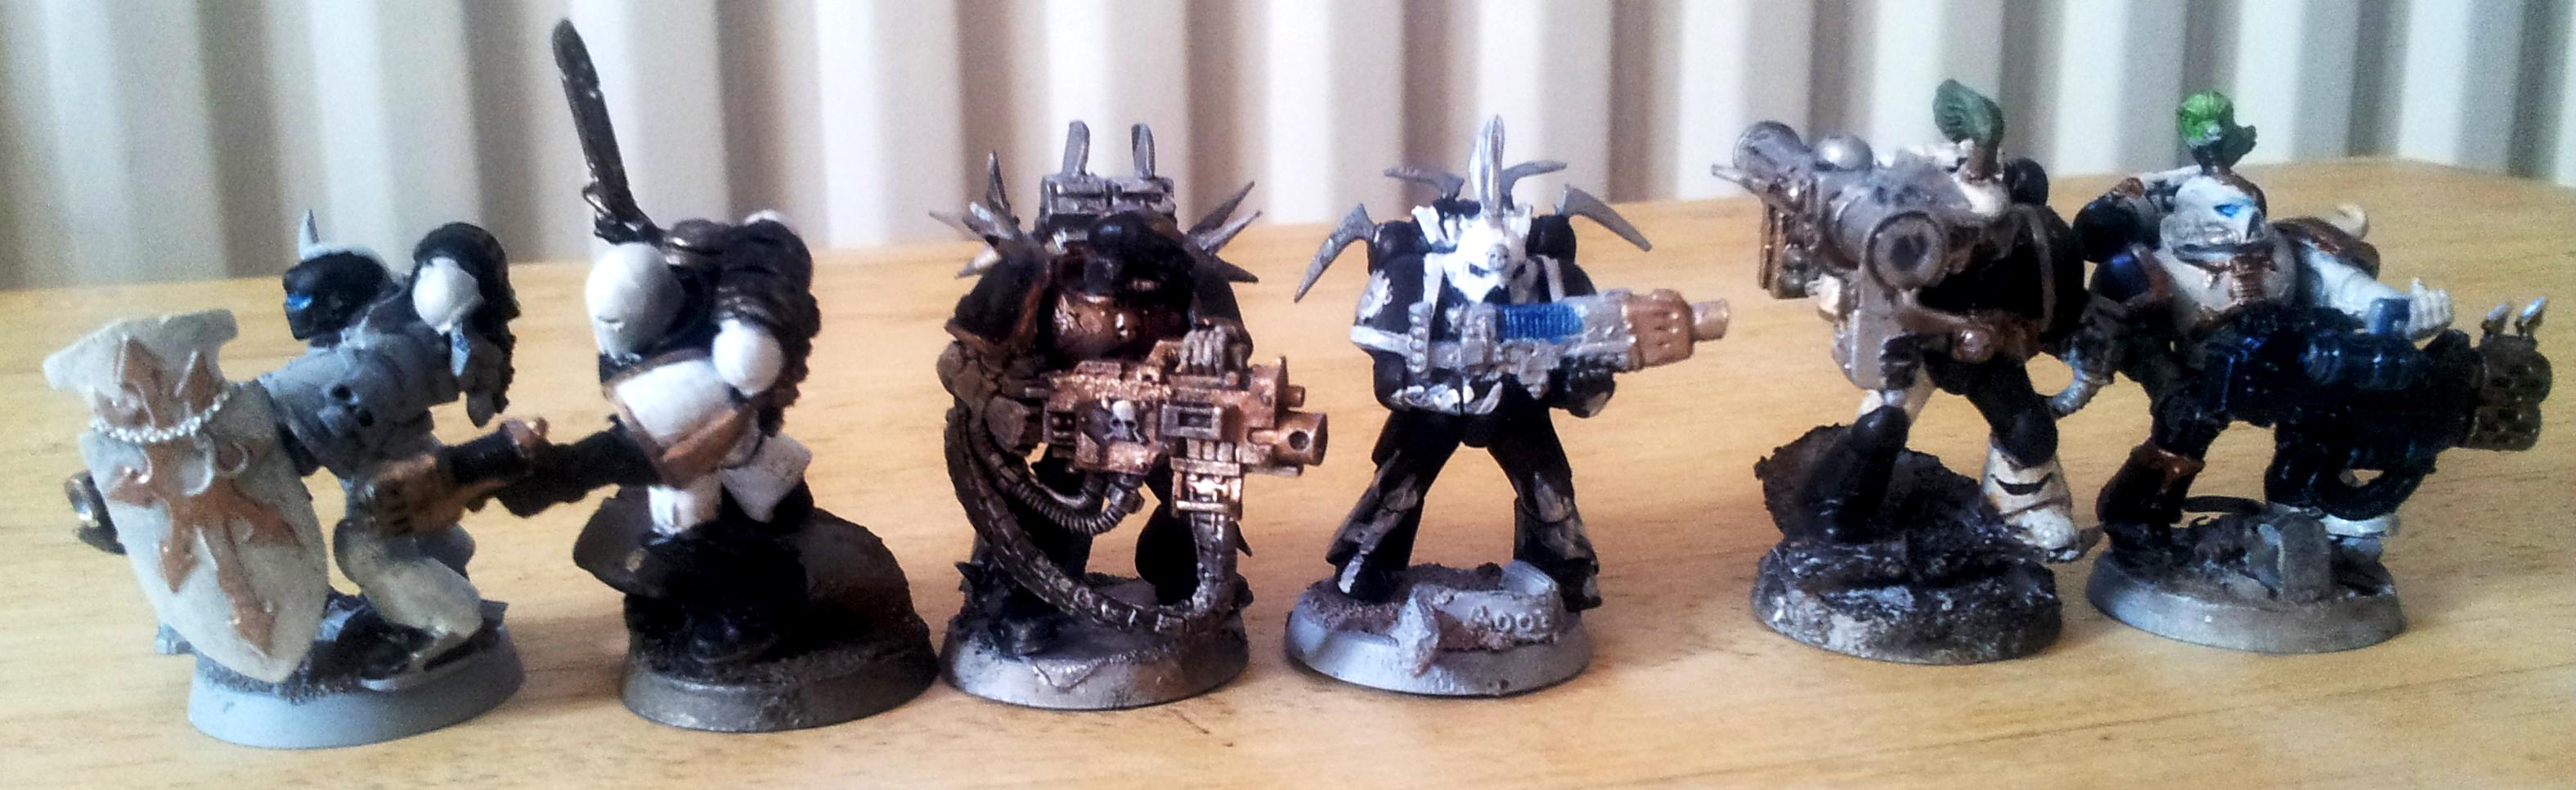 Chaos, Chaos Space Marines, Conversion, Low Budget, Space, Space Marines, Work In Progress